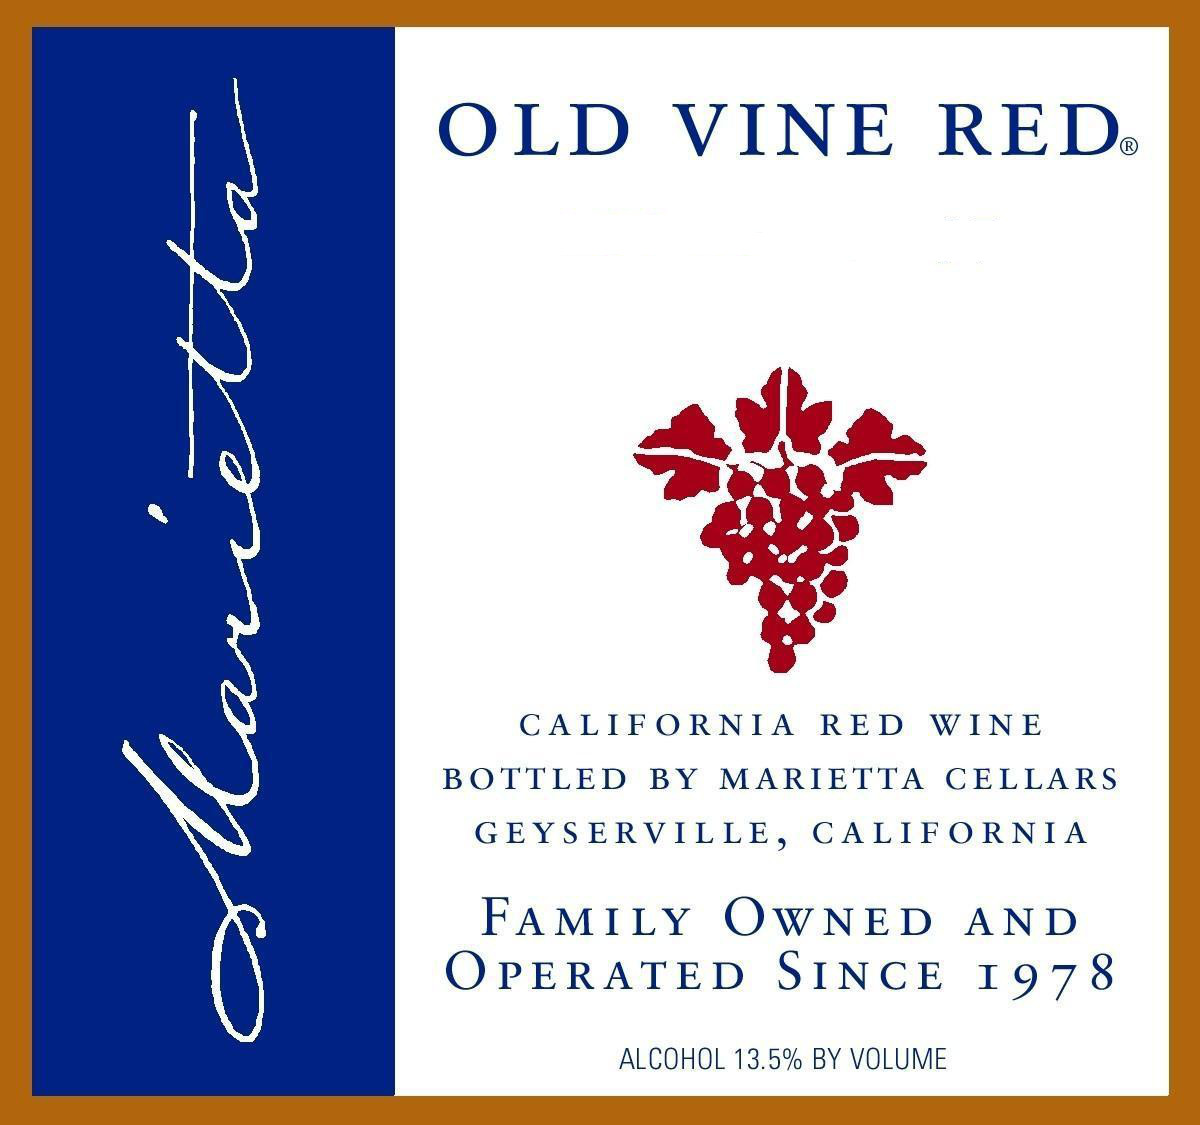 W.O.W. for Aug. 24 to 30: 90 Point, Old Vine Red Blend